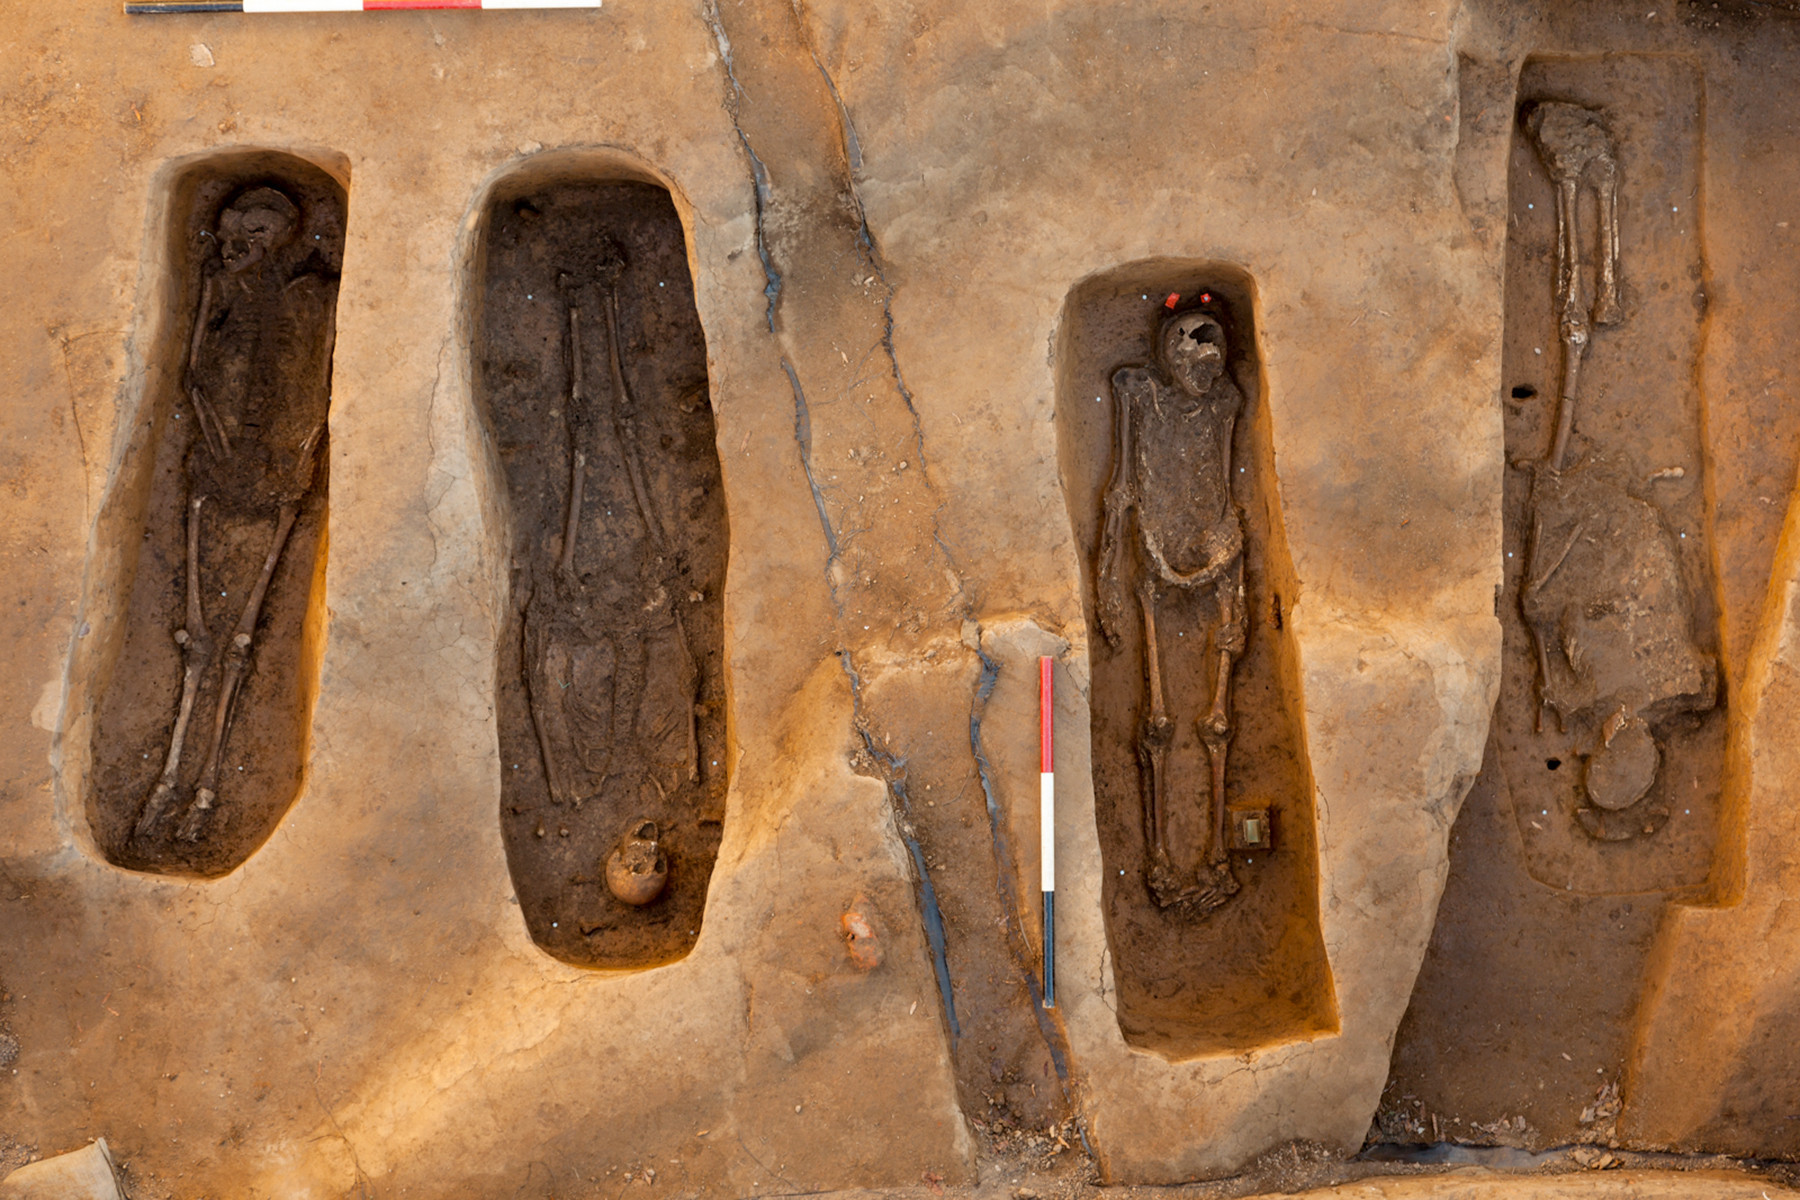 Remains of 4 early colonial leaders discovered at Jamestown